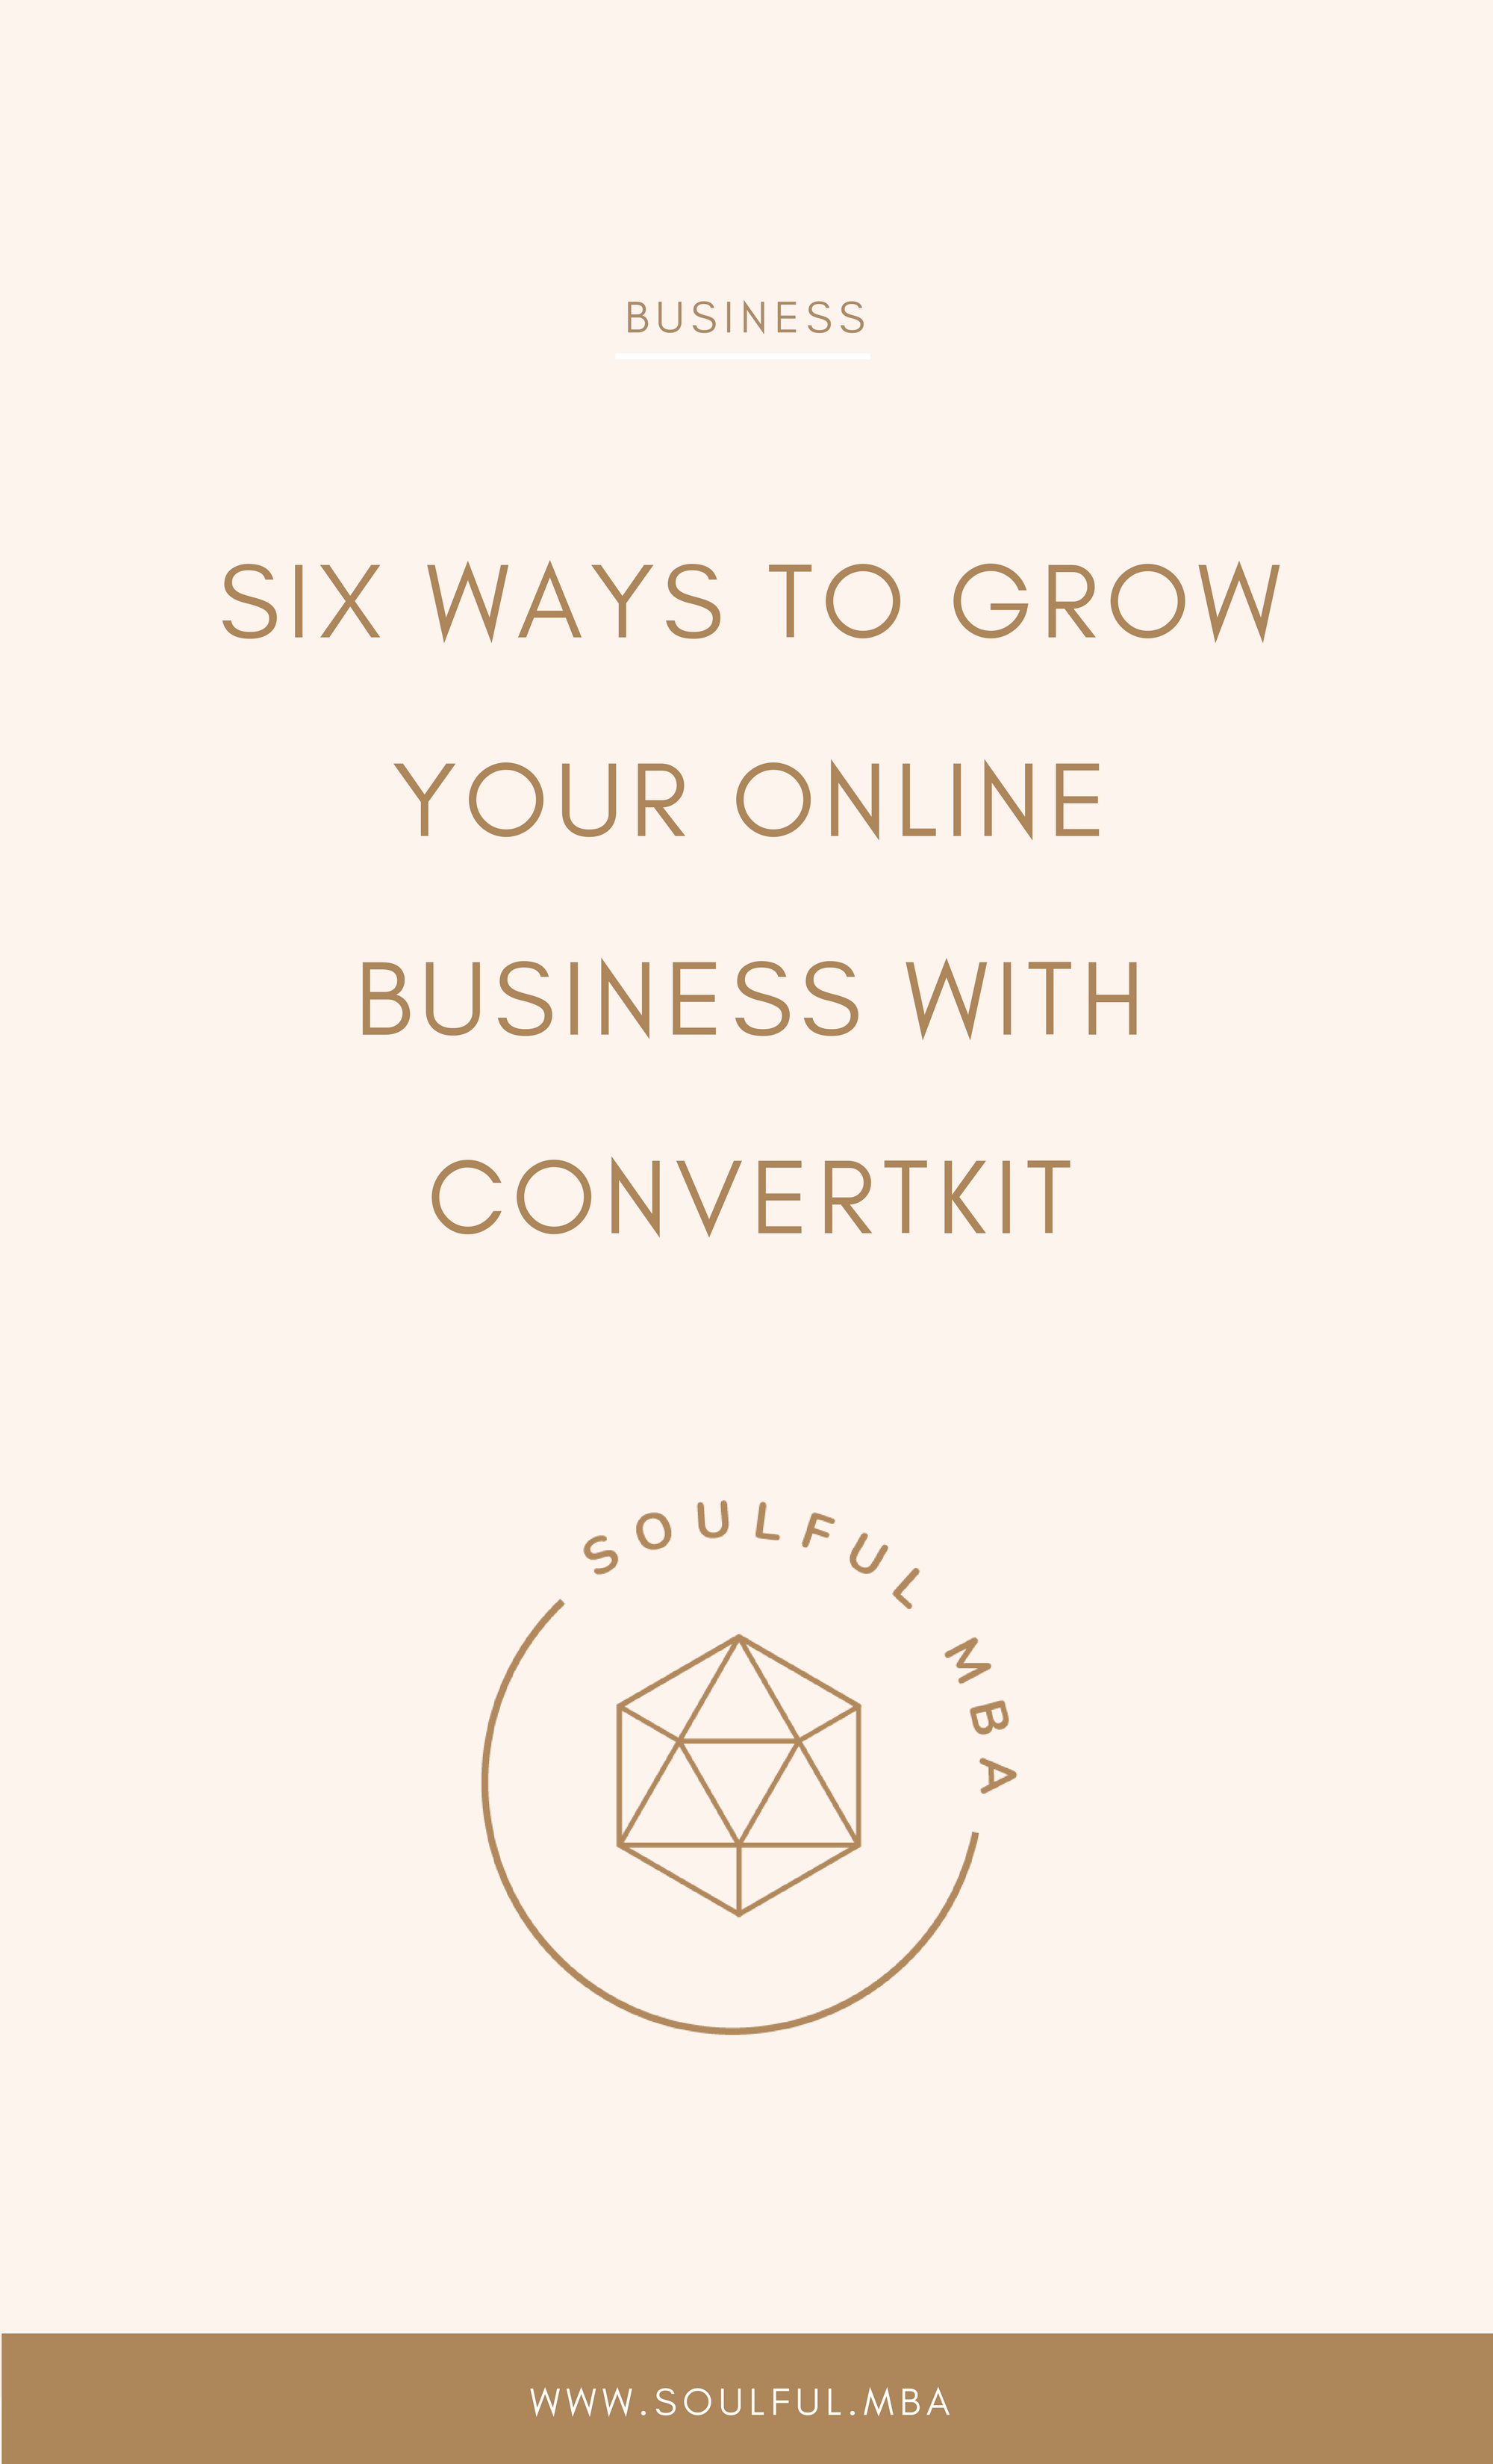 Soulful MBA grow your business with convertkit.png